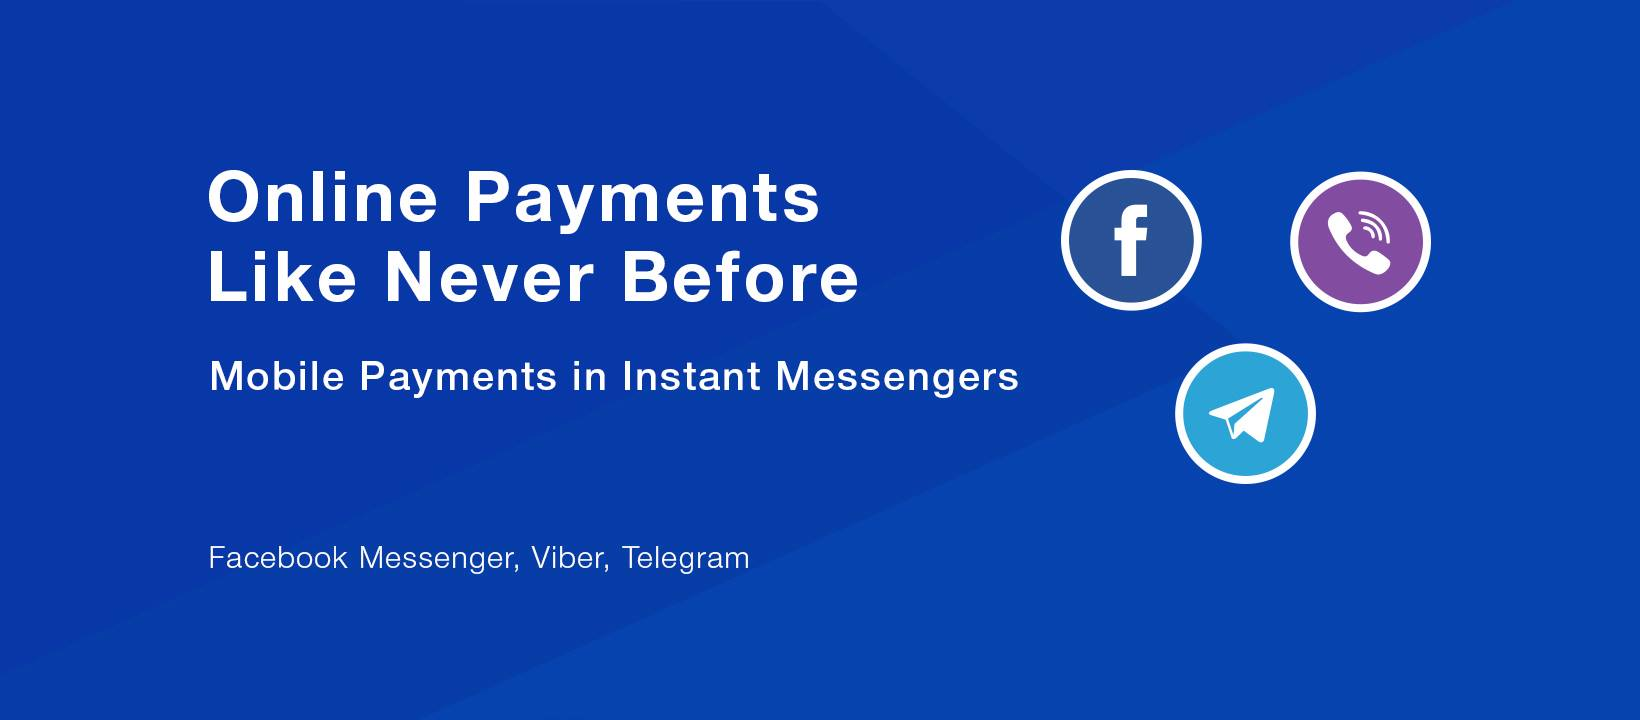 Accept payments online on websites, social media, messengers